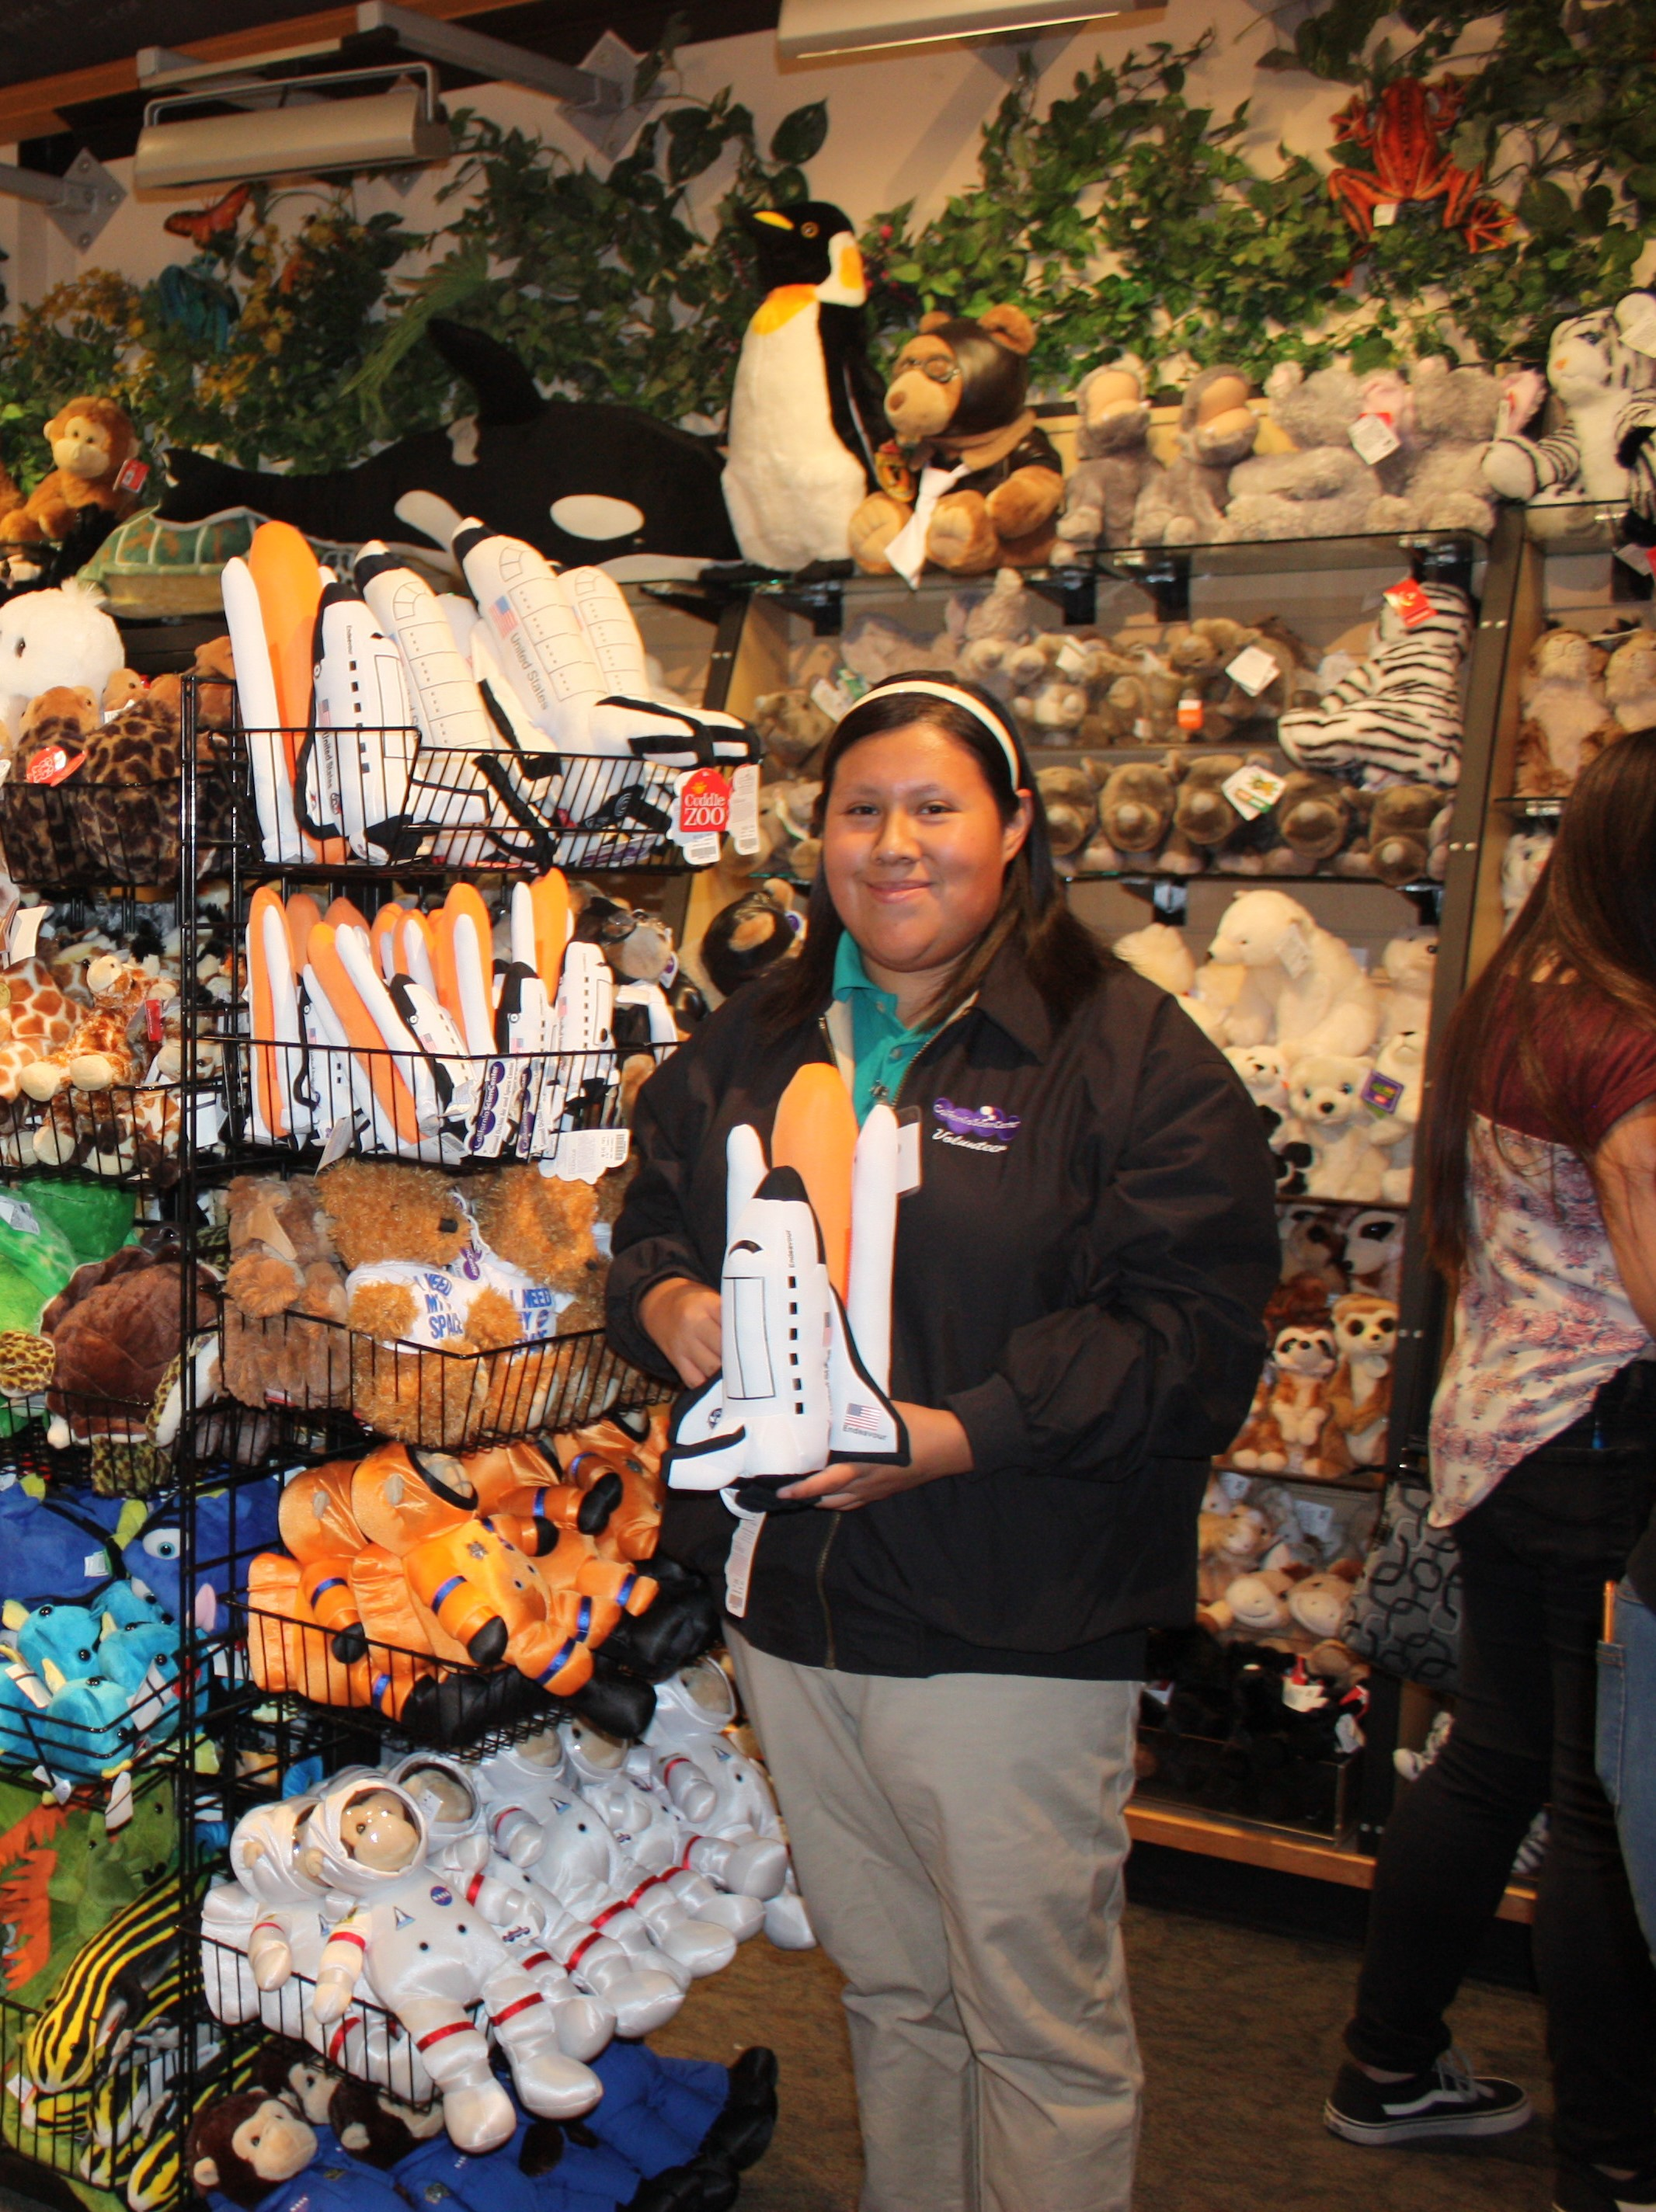 ExploraStore Volunteer holds plush Endeavour Toy next to retail rack of space themed plush toys inside the store.